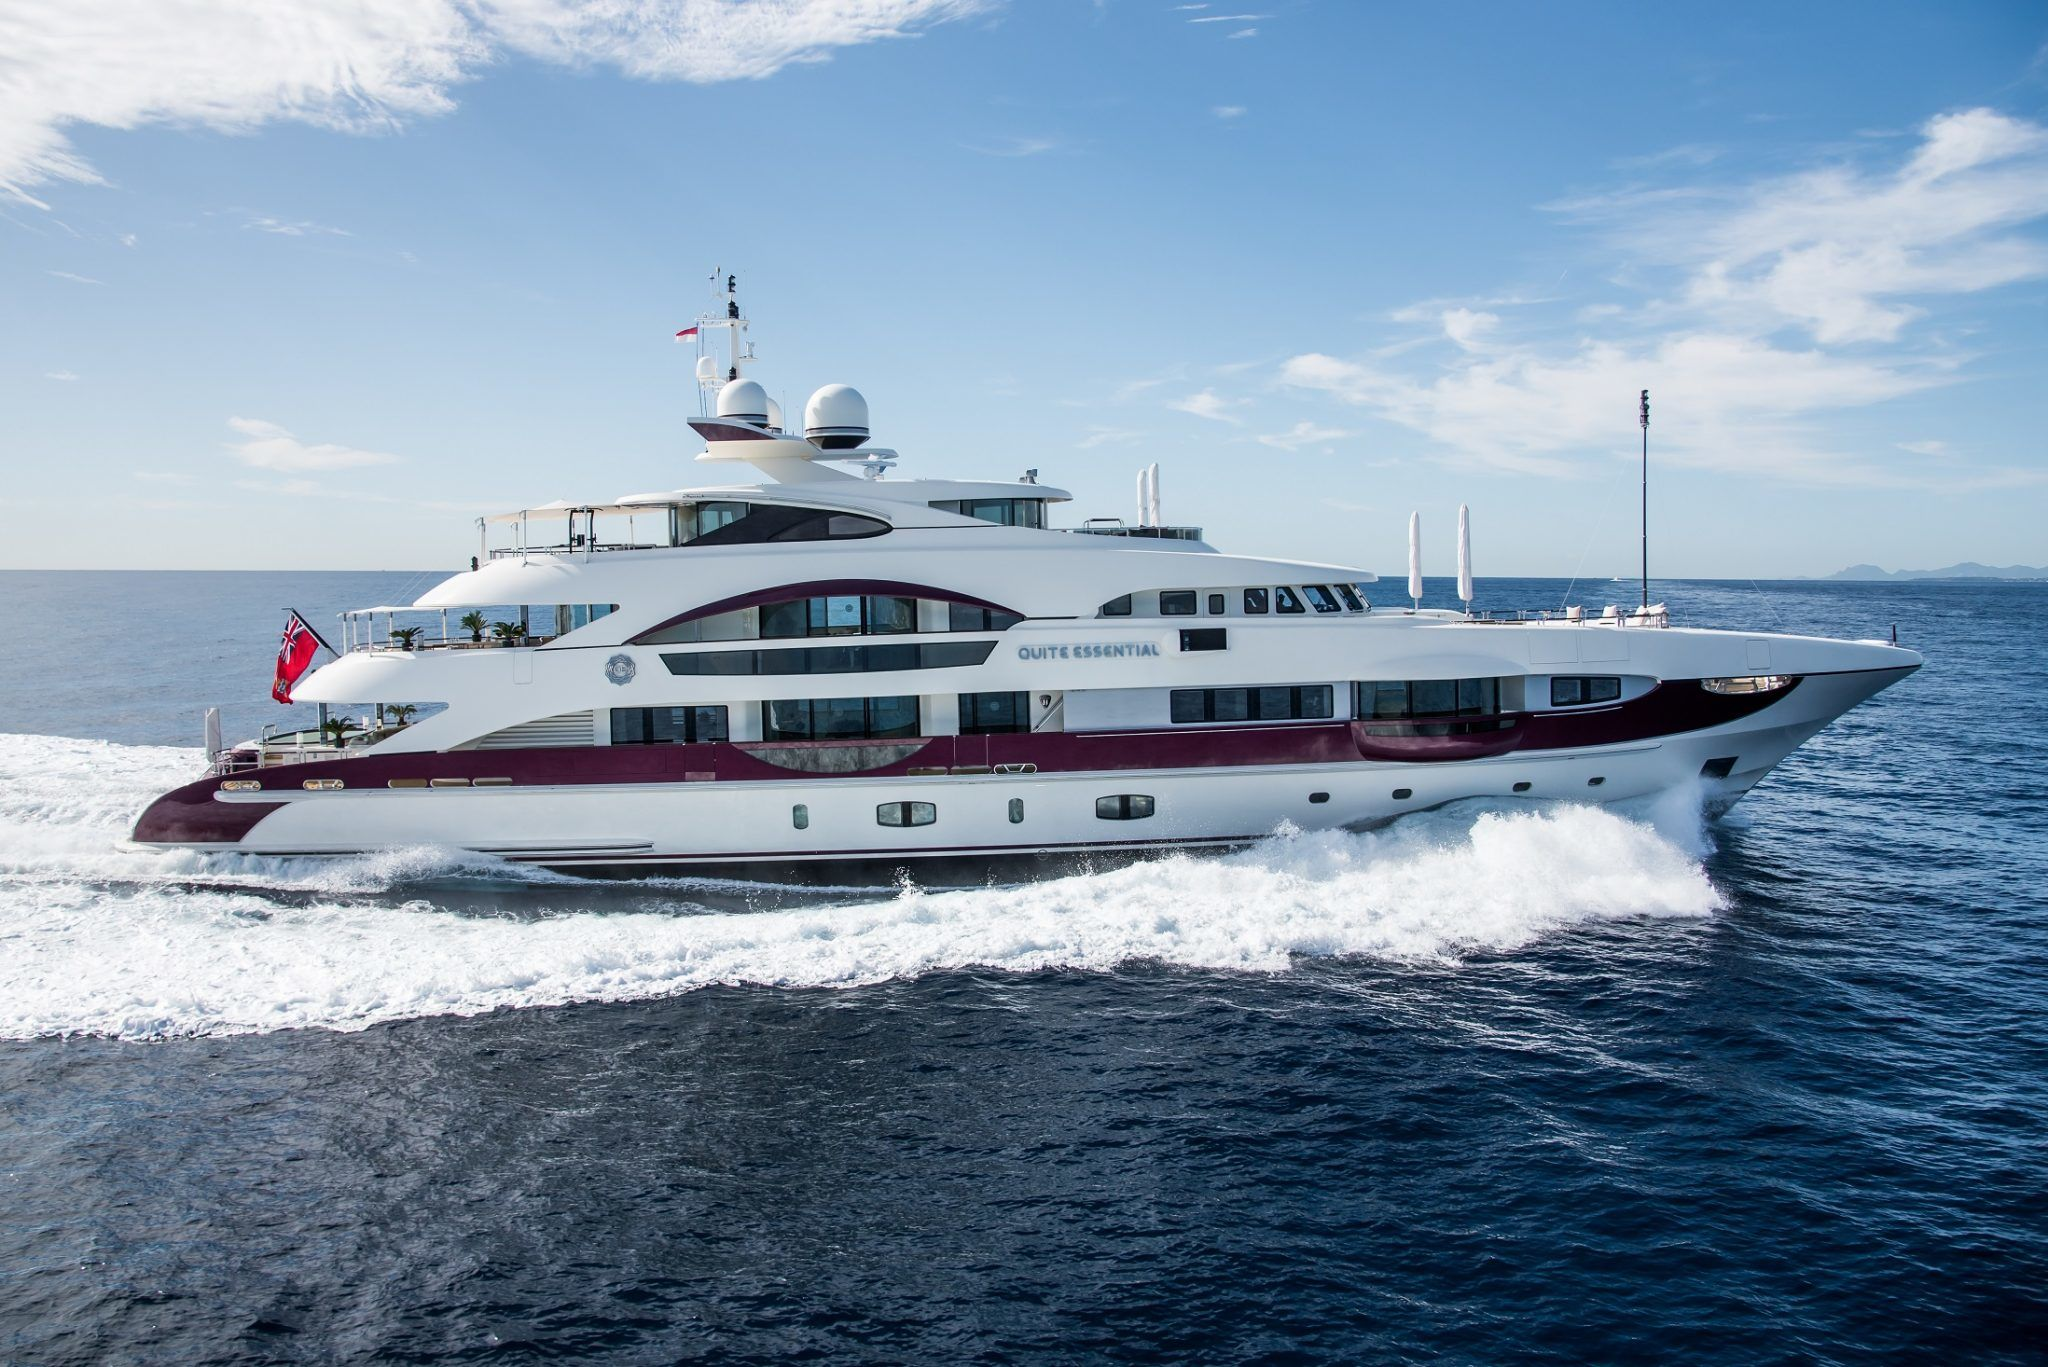 M/Y QUITE ESSENTIAL Yacht for Charter running